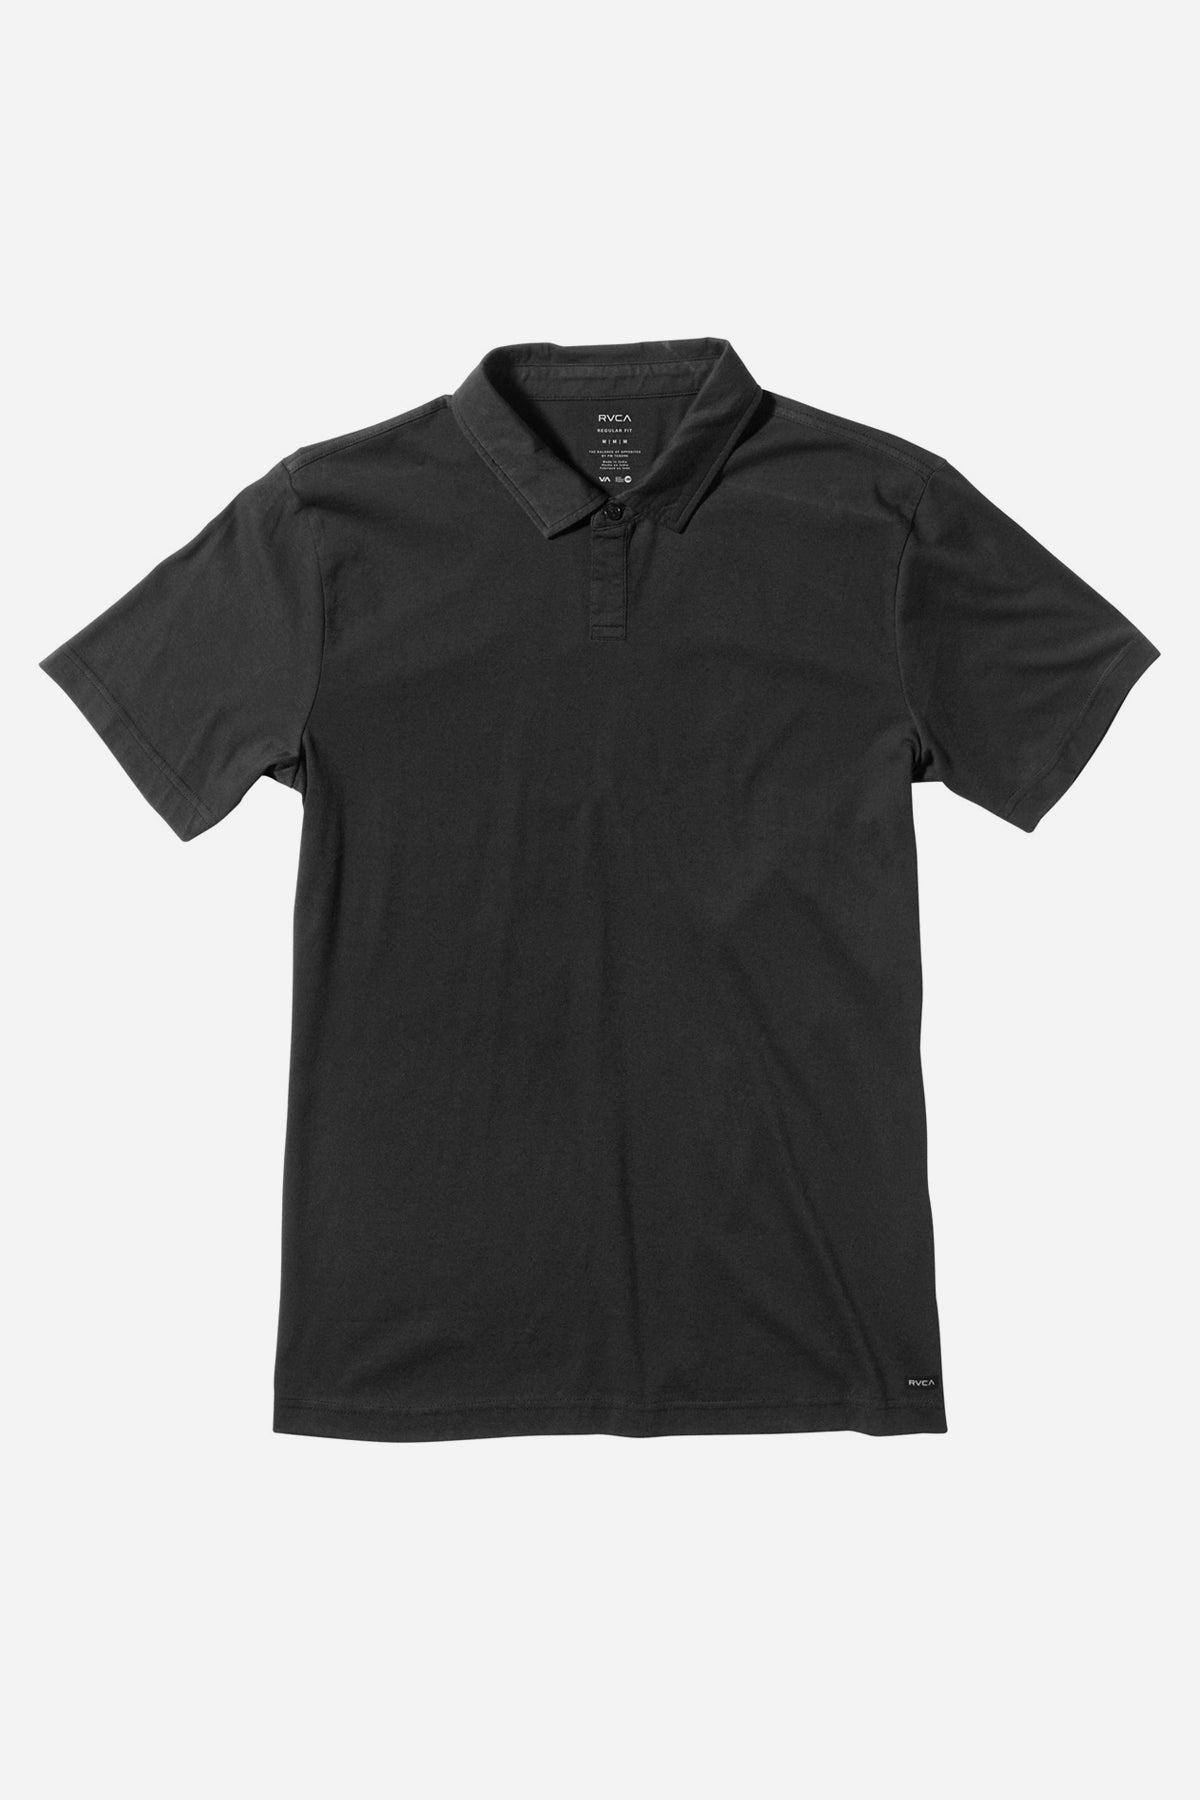 RVCA Sure Thing Boys Polo Shirt - Black